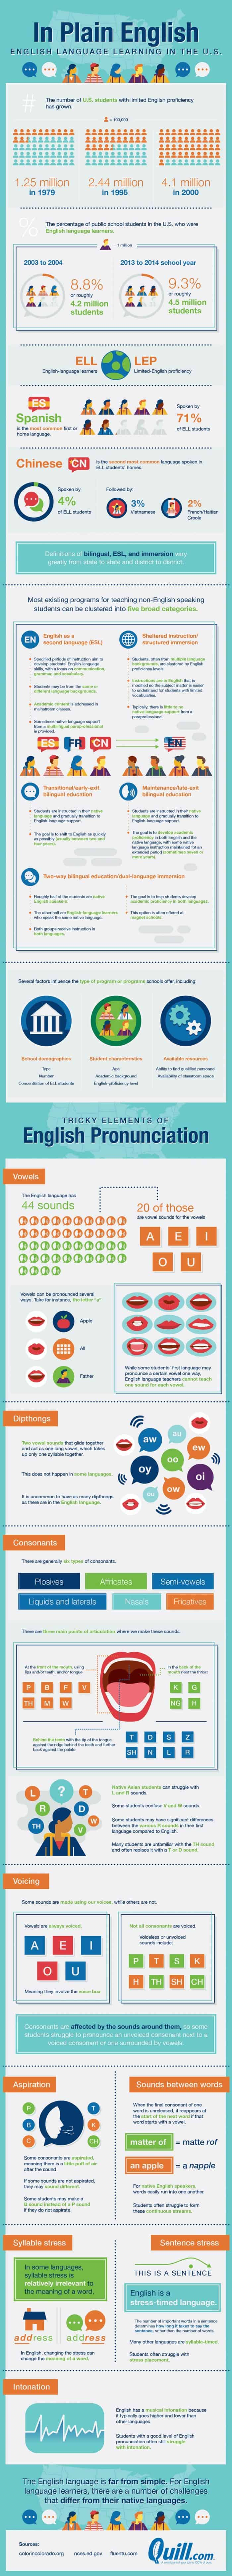 English Language Learning In The US Infographic